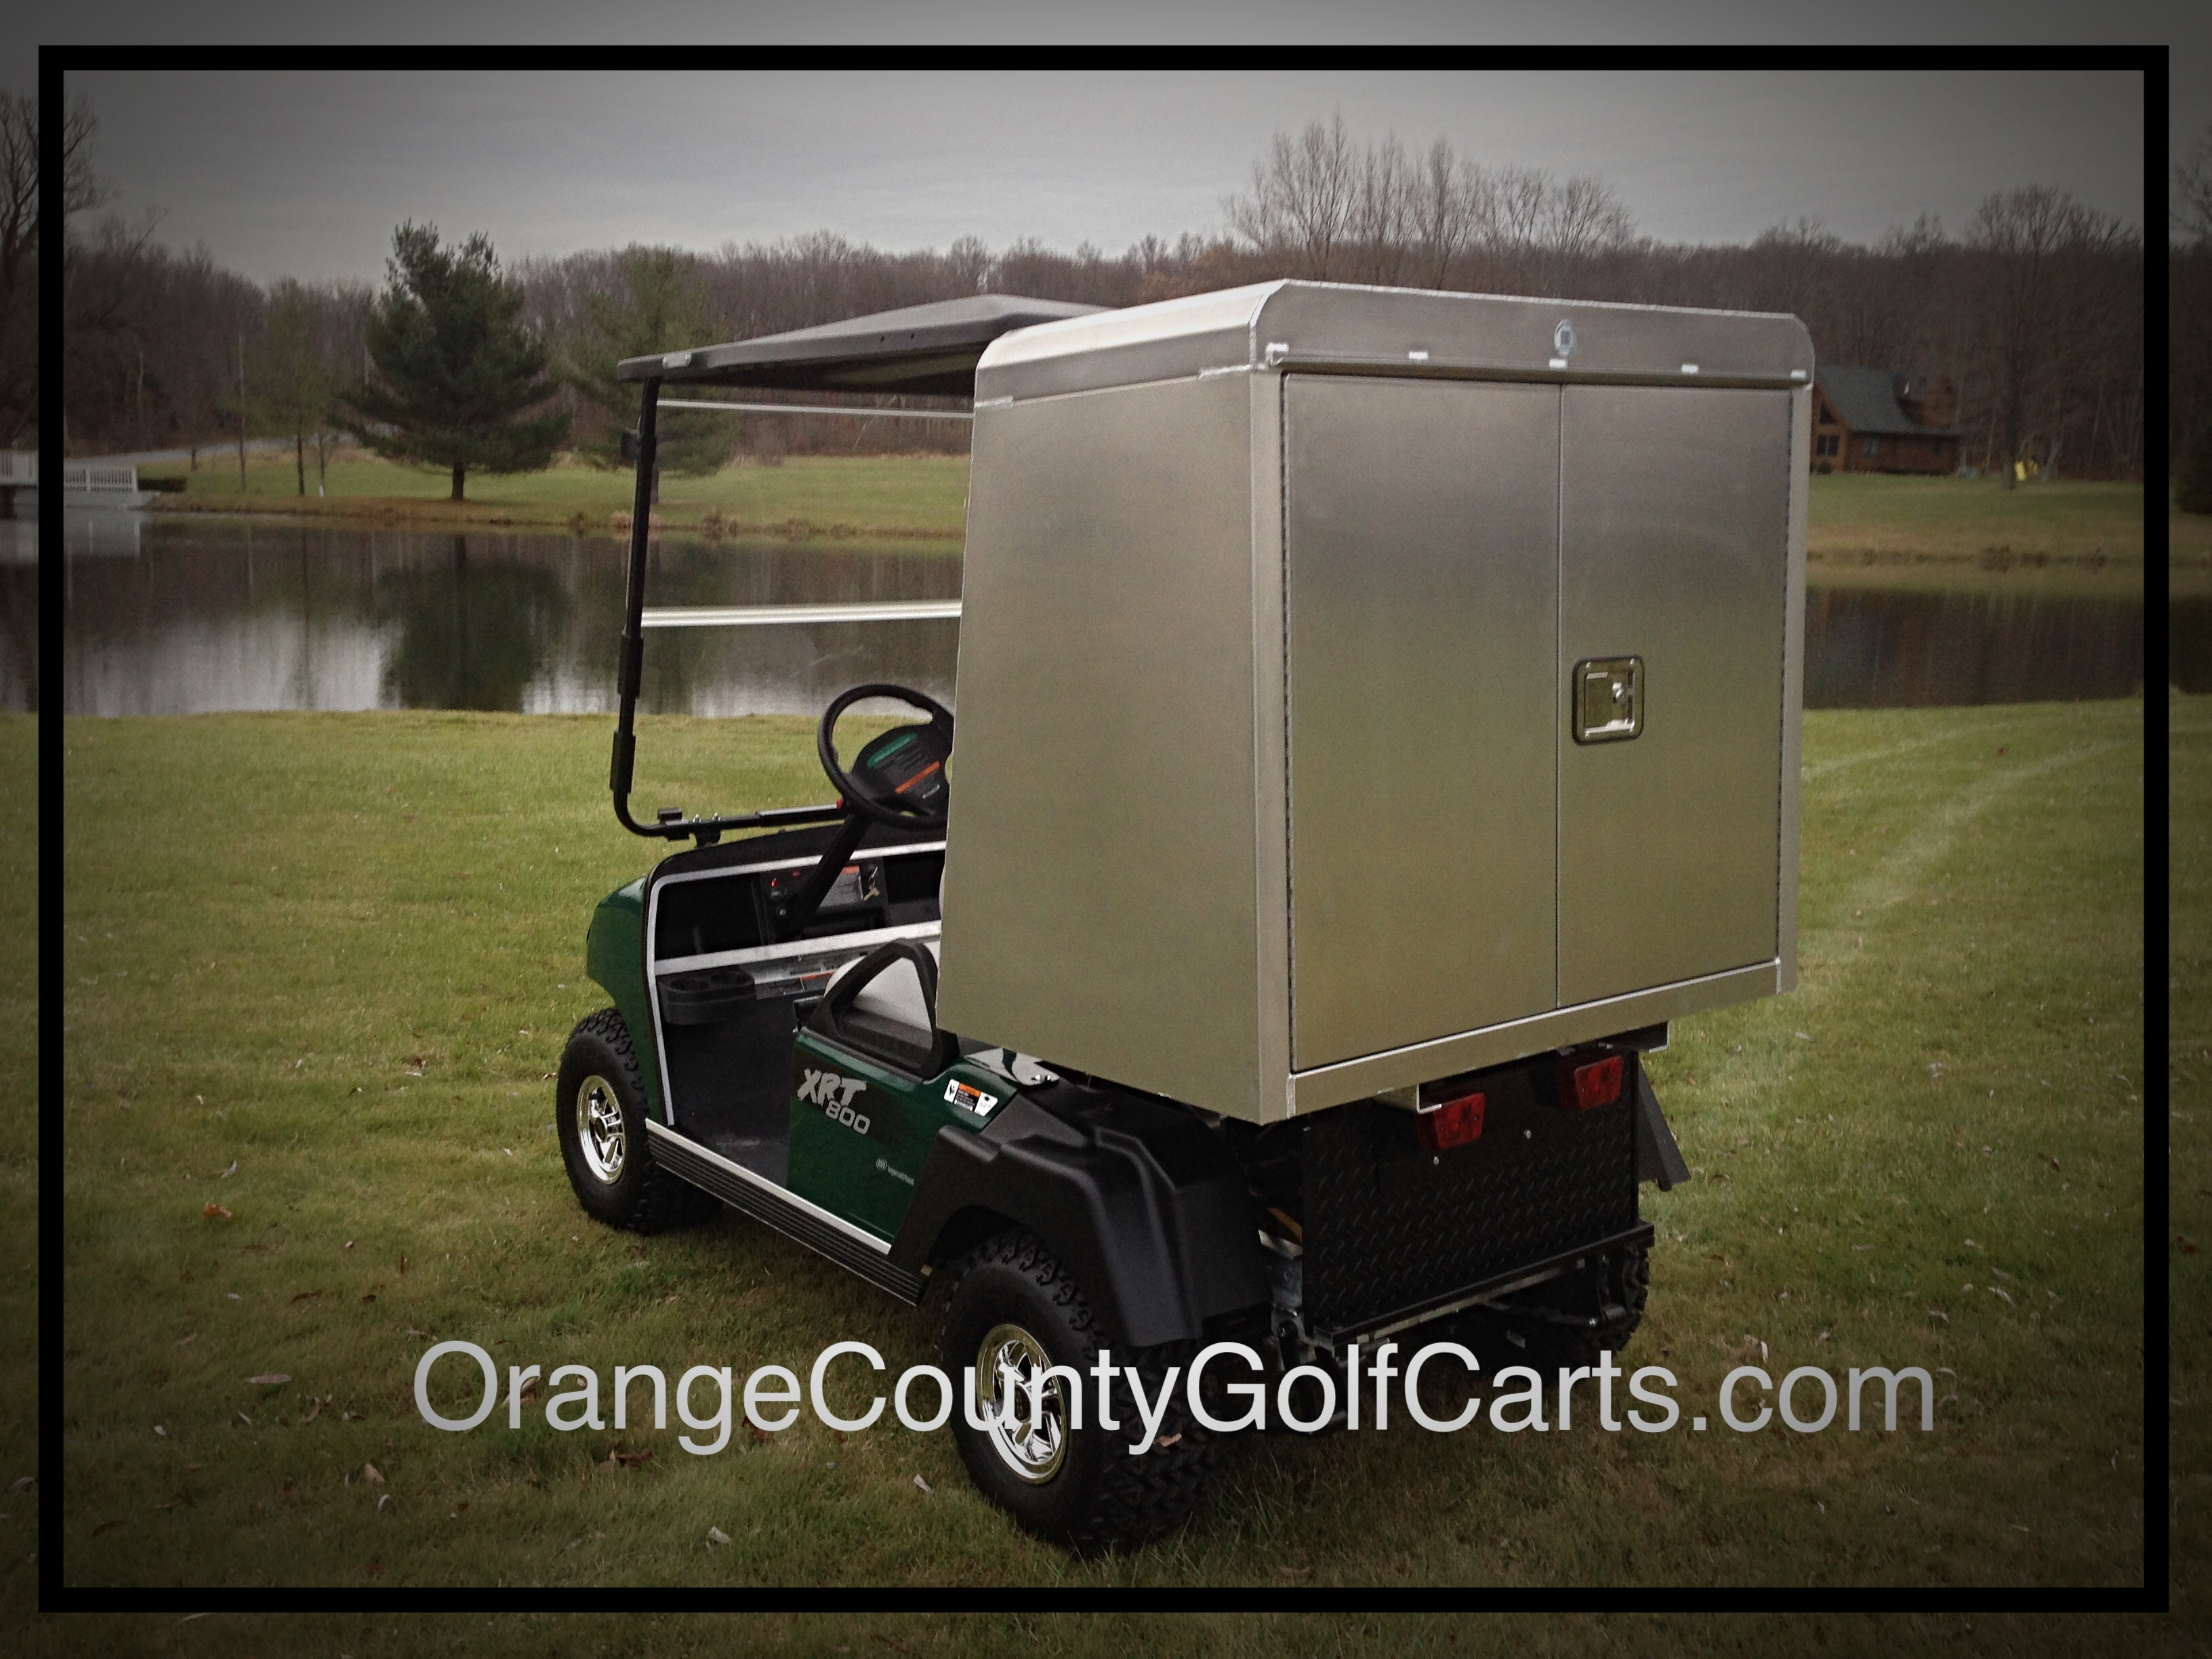 GOLF CART FOOD BEVERAGE Golf Course Transport Cart Bluetooth Remote on